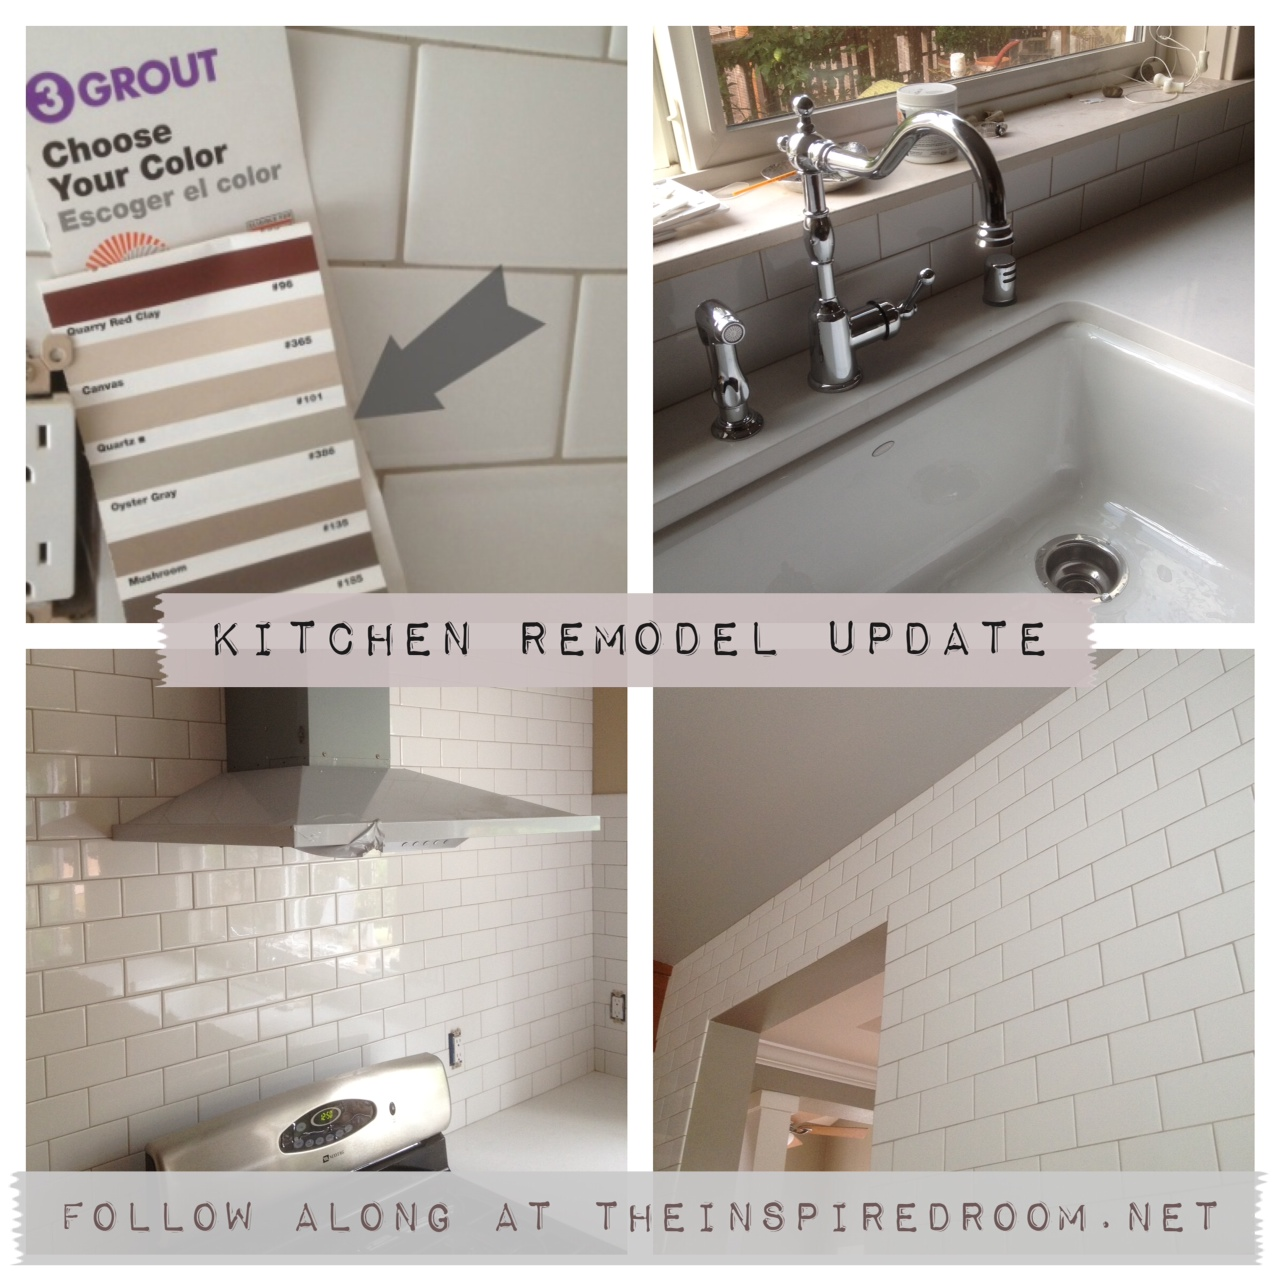 Subway tile grout oyster gray what color is my subway tile grout a kitchen remodel progress report doublecrazyfo Images